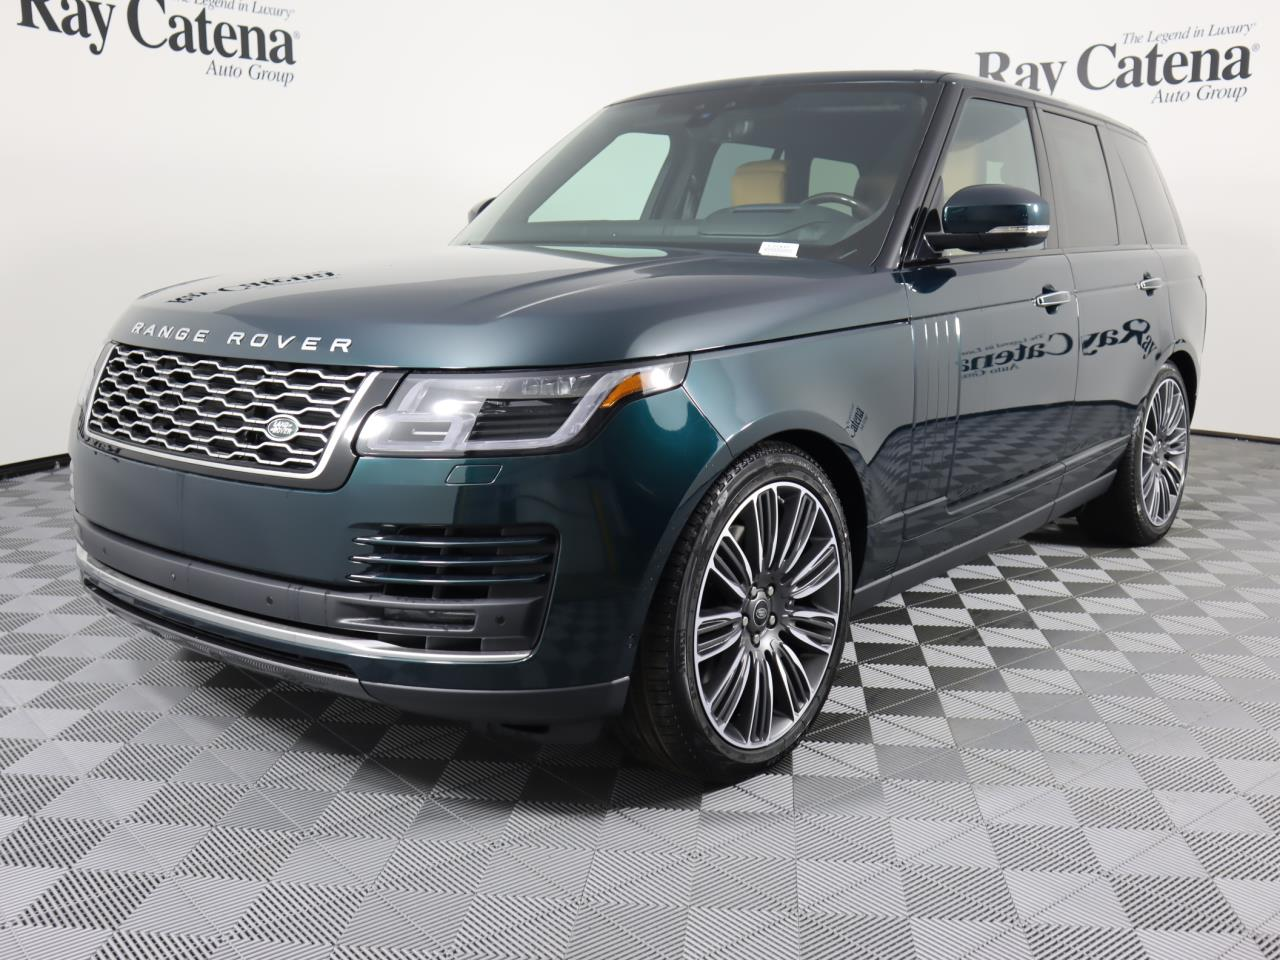 New 2021 Land Rover Range Rover 5.0L V8 Supercharged Autobiography